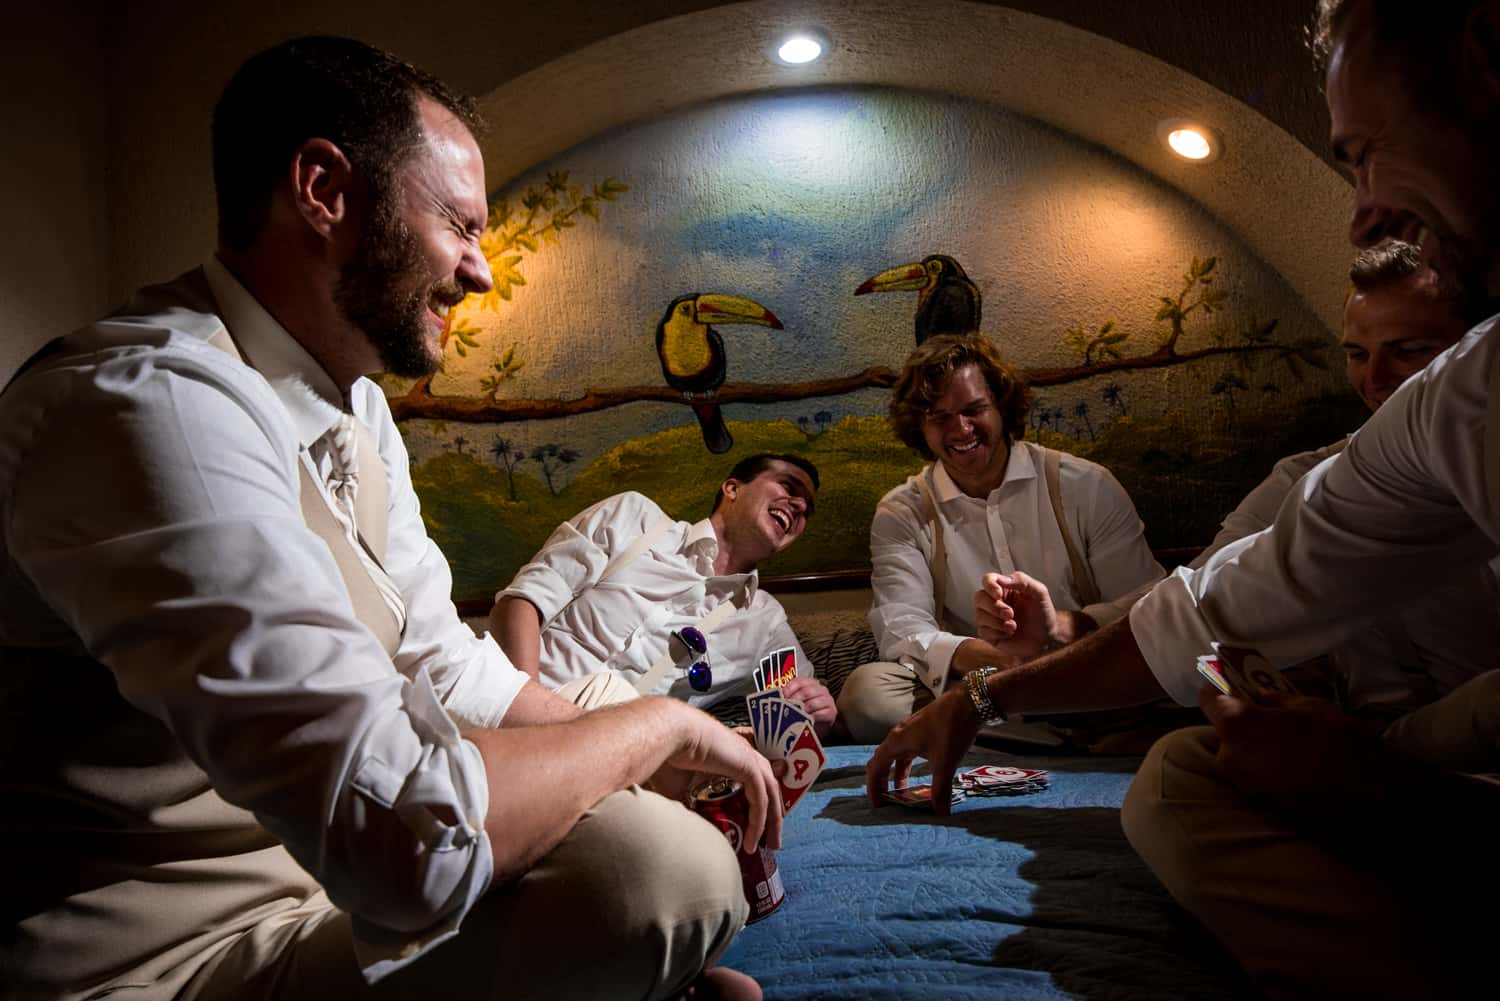 groomsman playing cards on a bed in front of a tropical mural